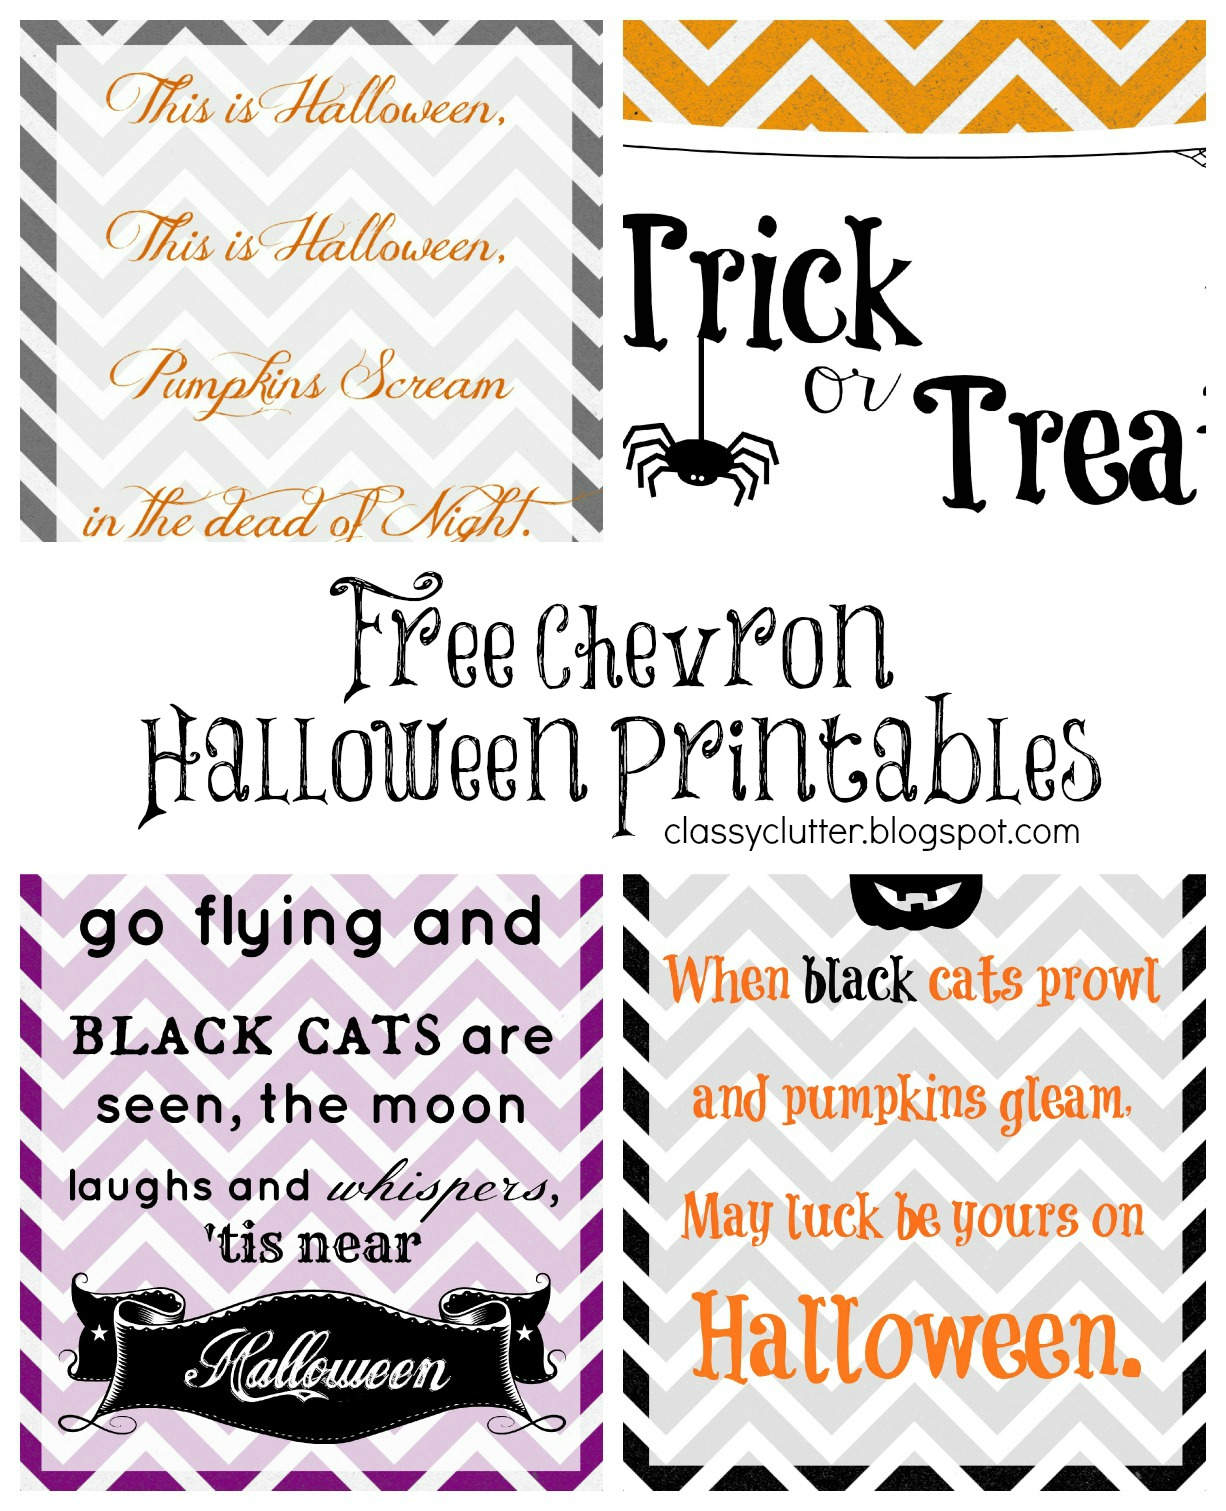 Chevron Halloween Printables